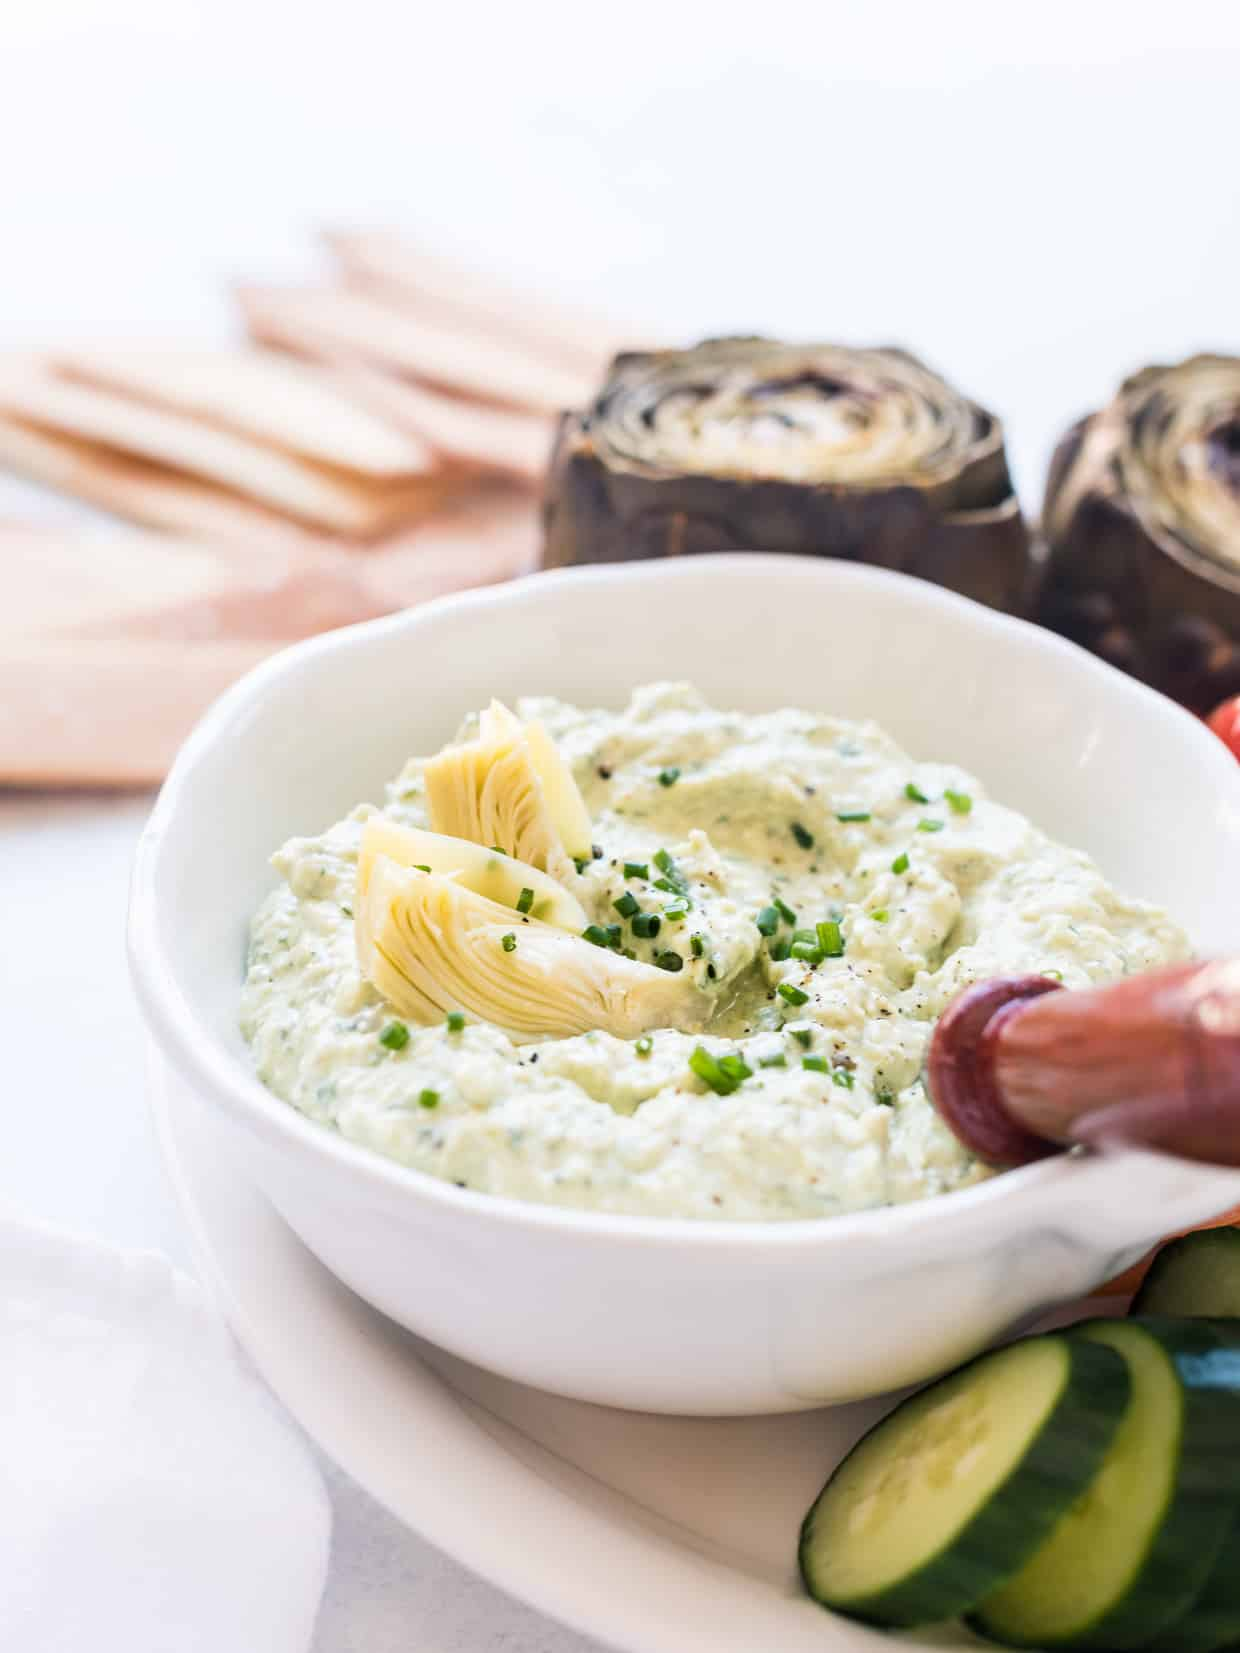 White bowl filled with Avocado and Artichoke Dip.